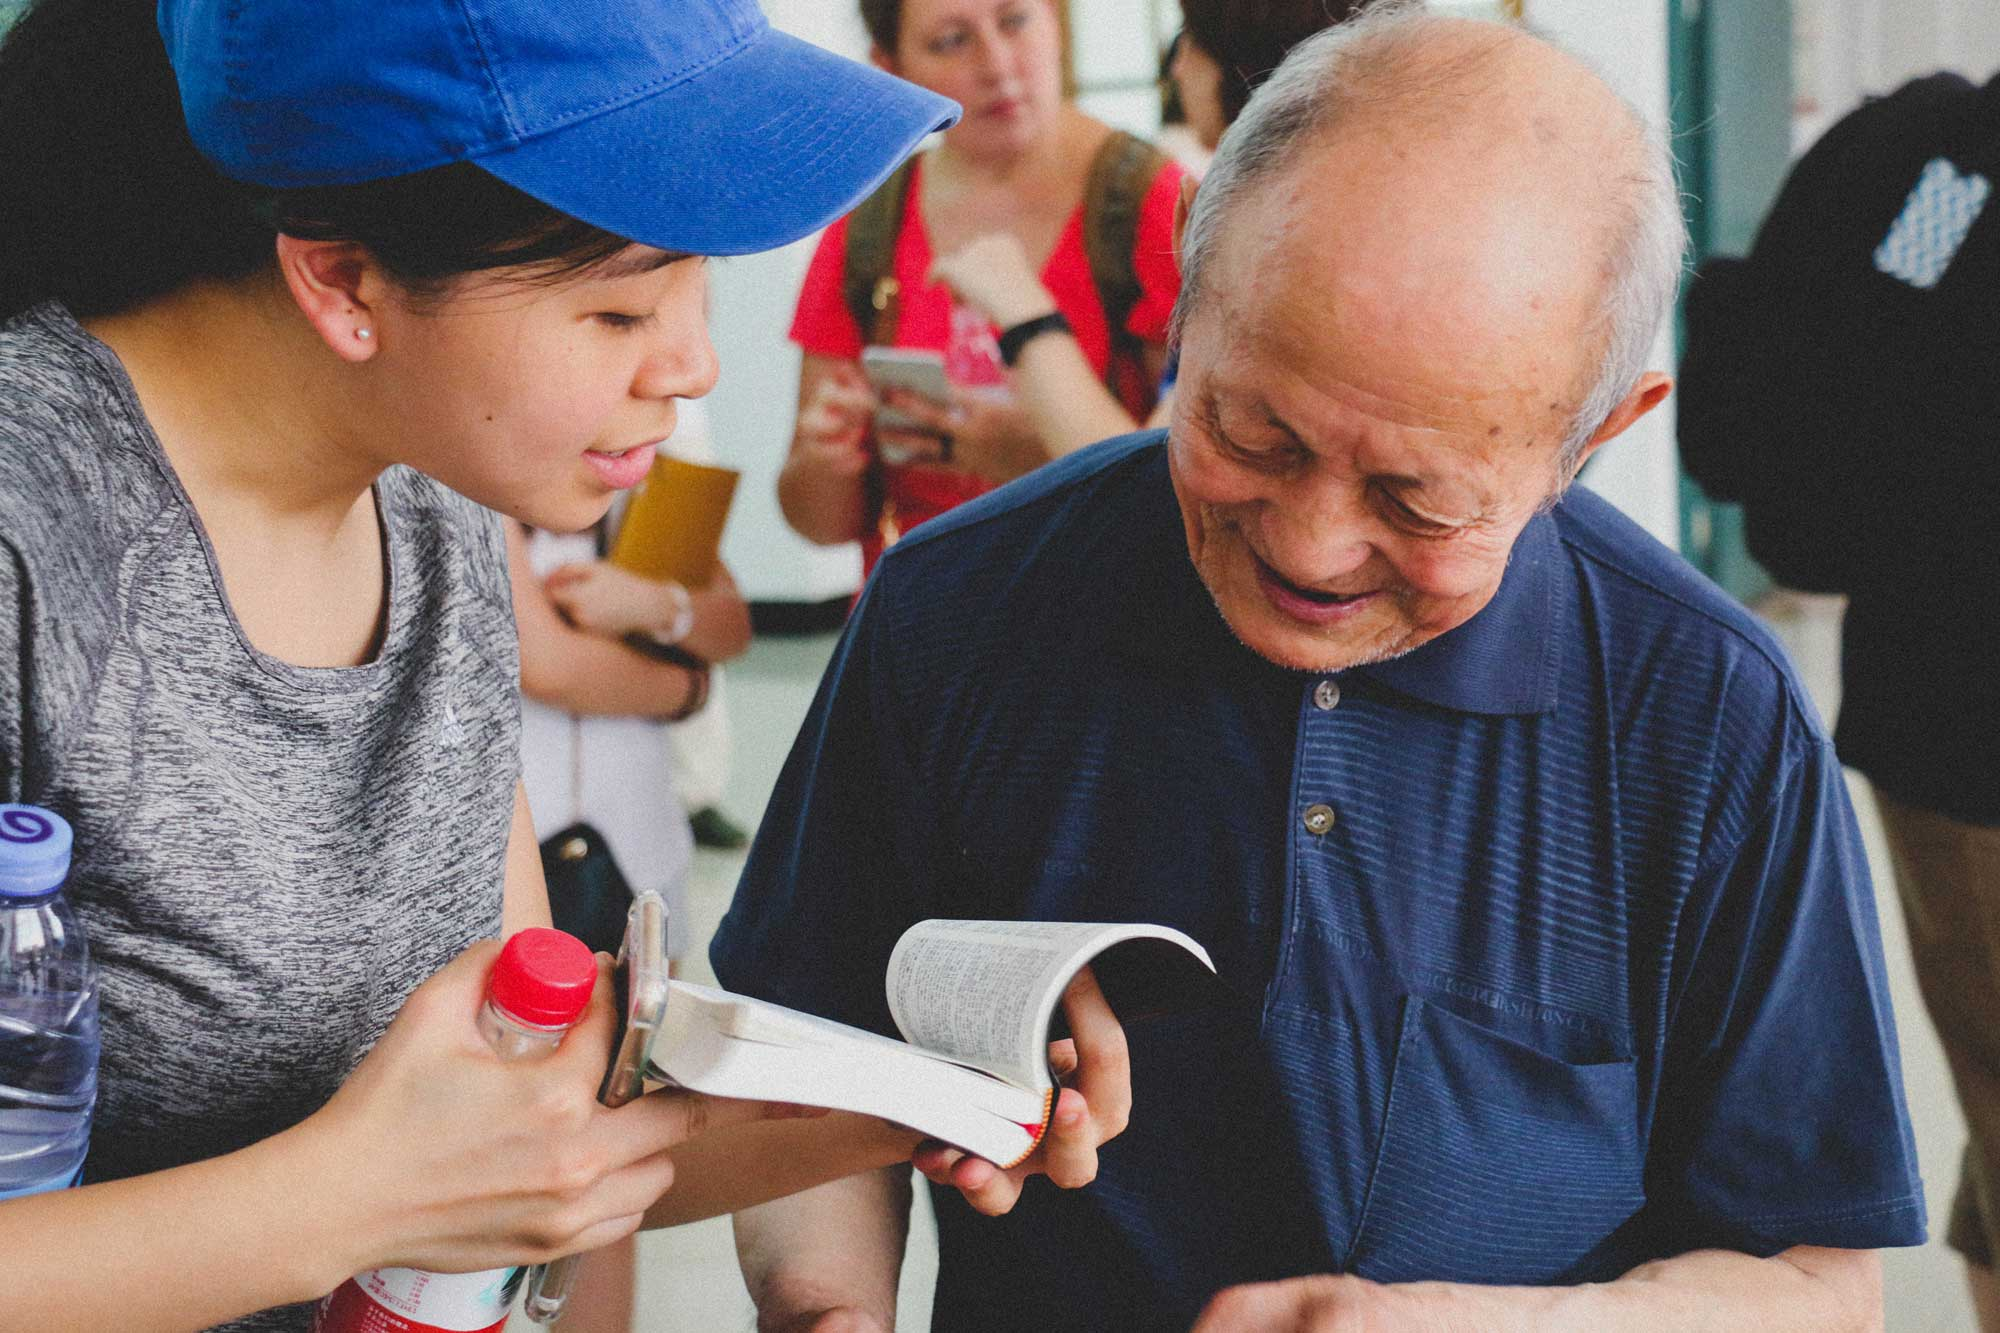 China Missions team member handing out a Bible.